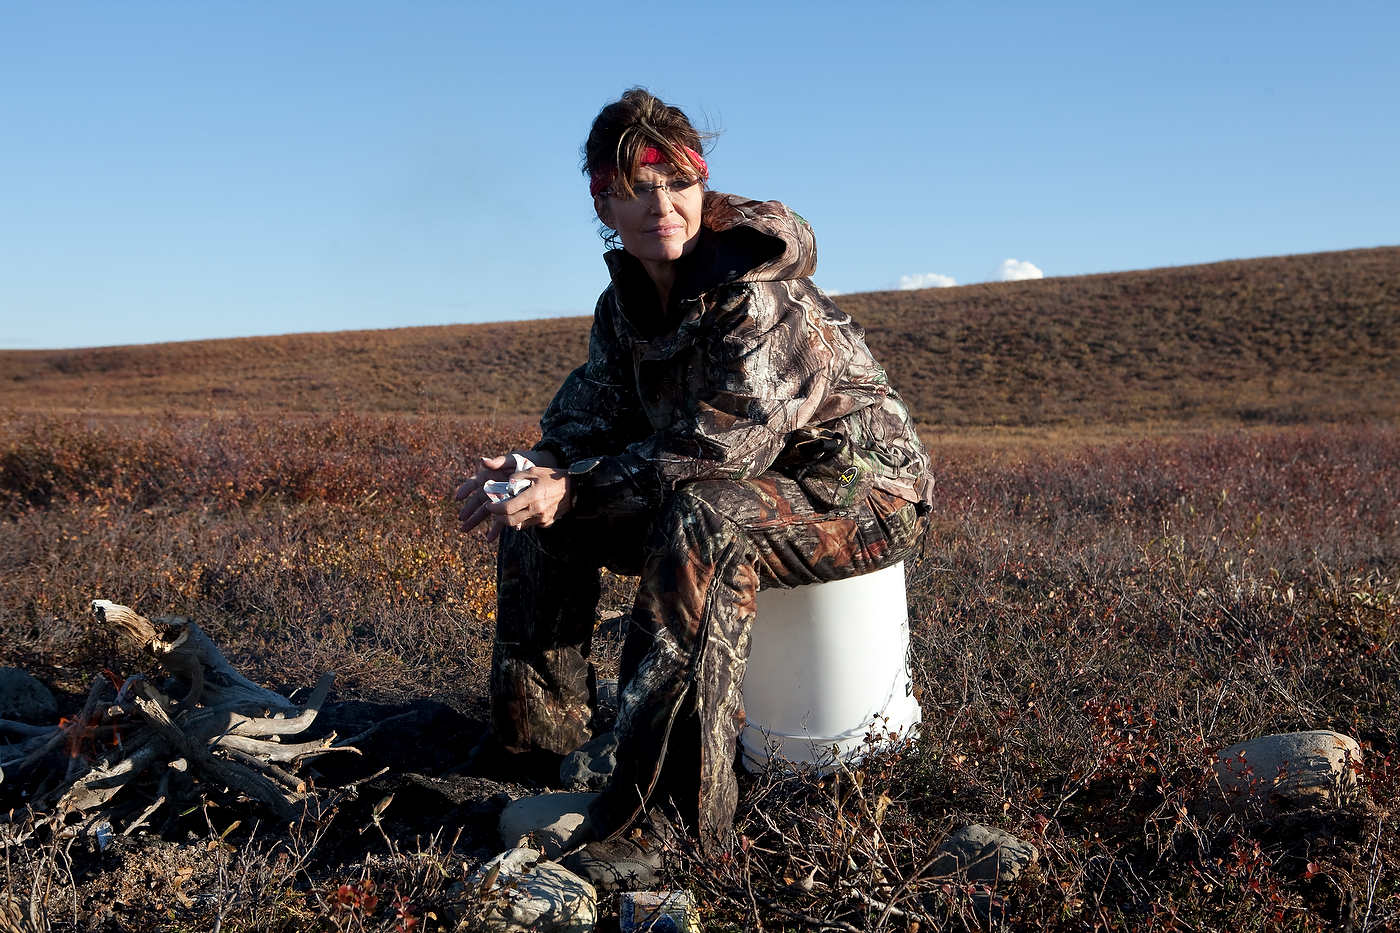 After an unfruitfull day of caribou hunting, Sarah Palin rests near Kavik, north of the Arctic Circle.